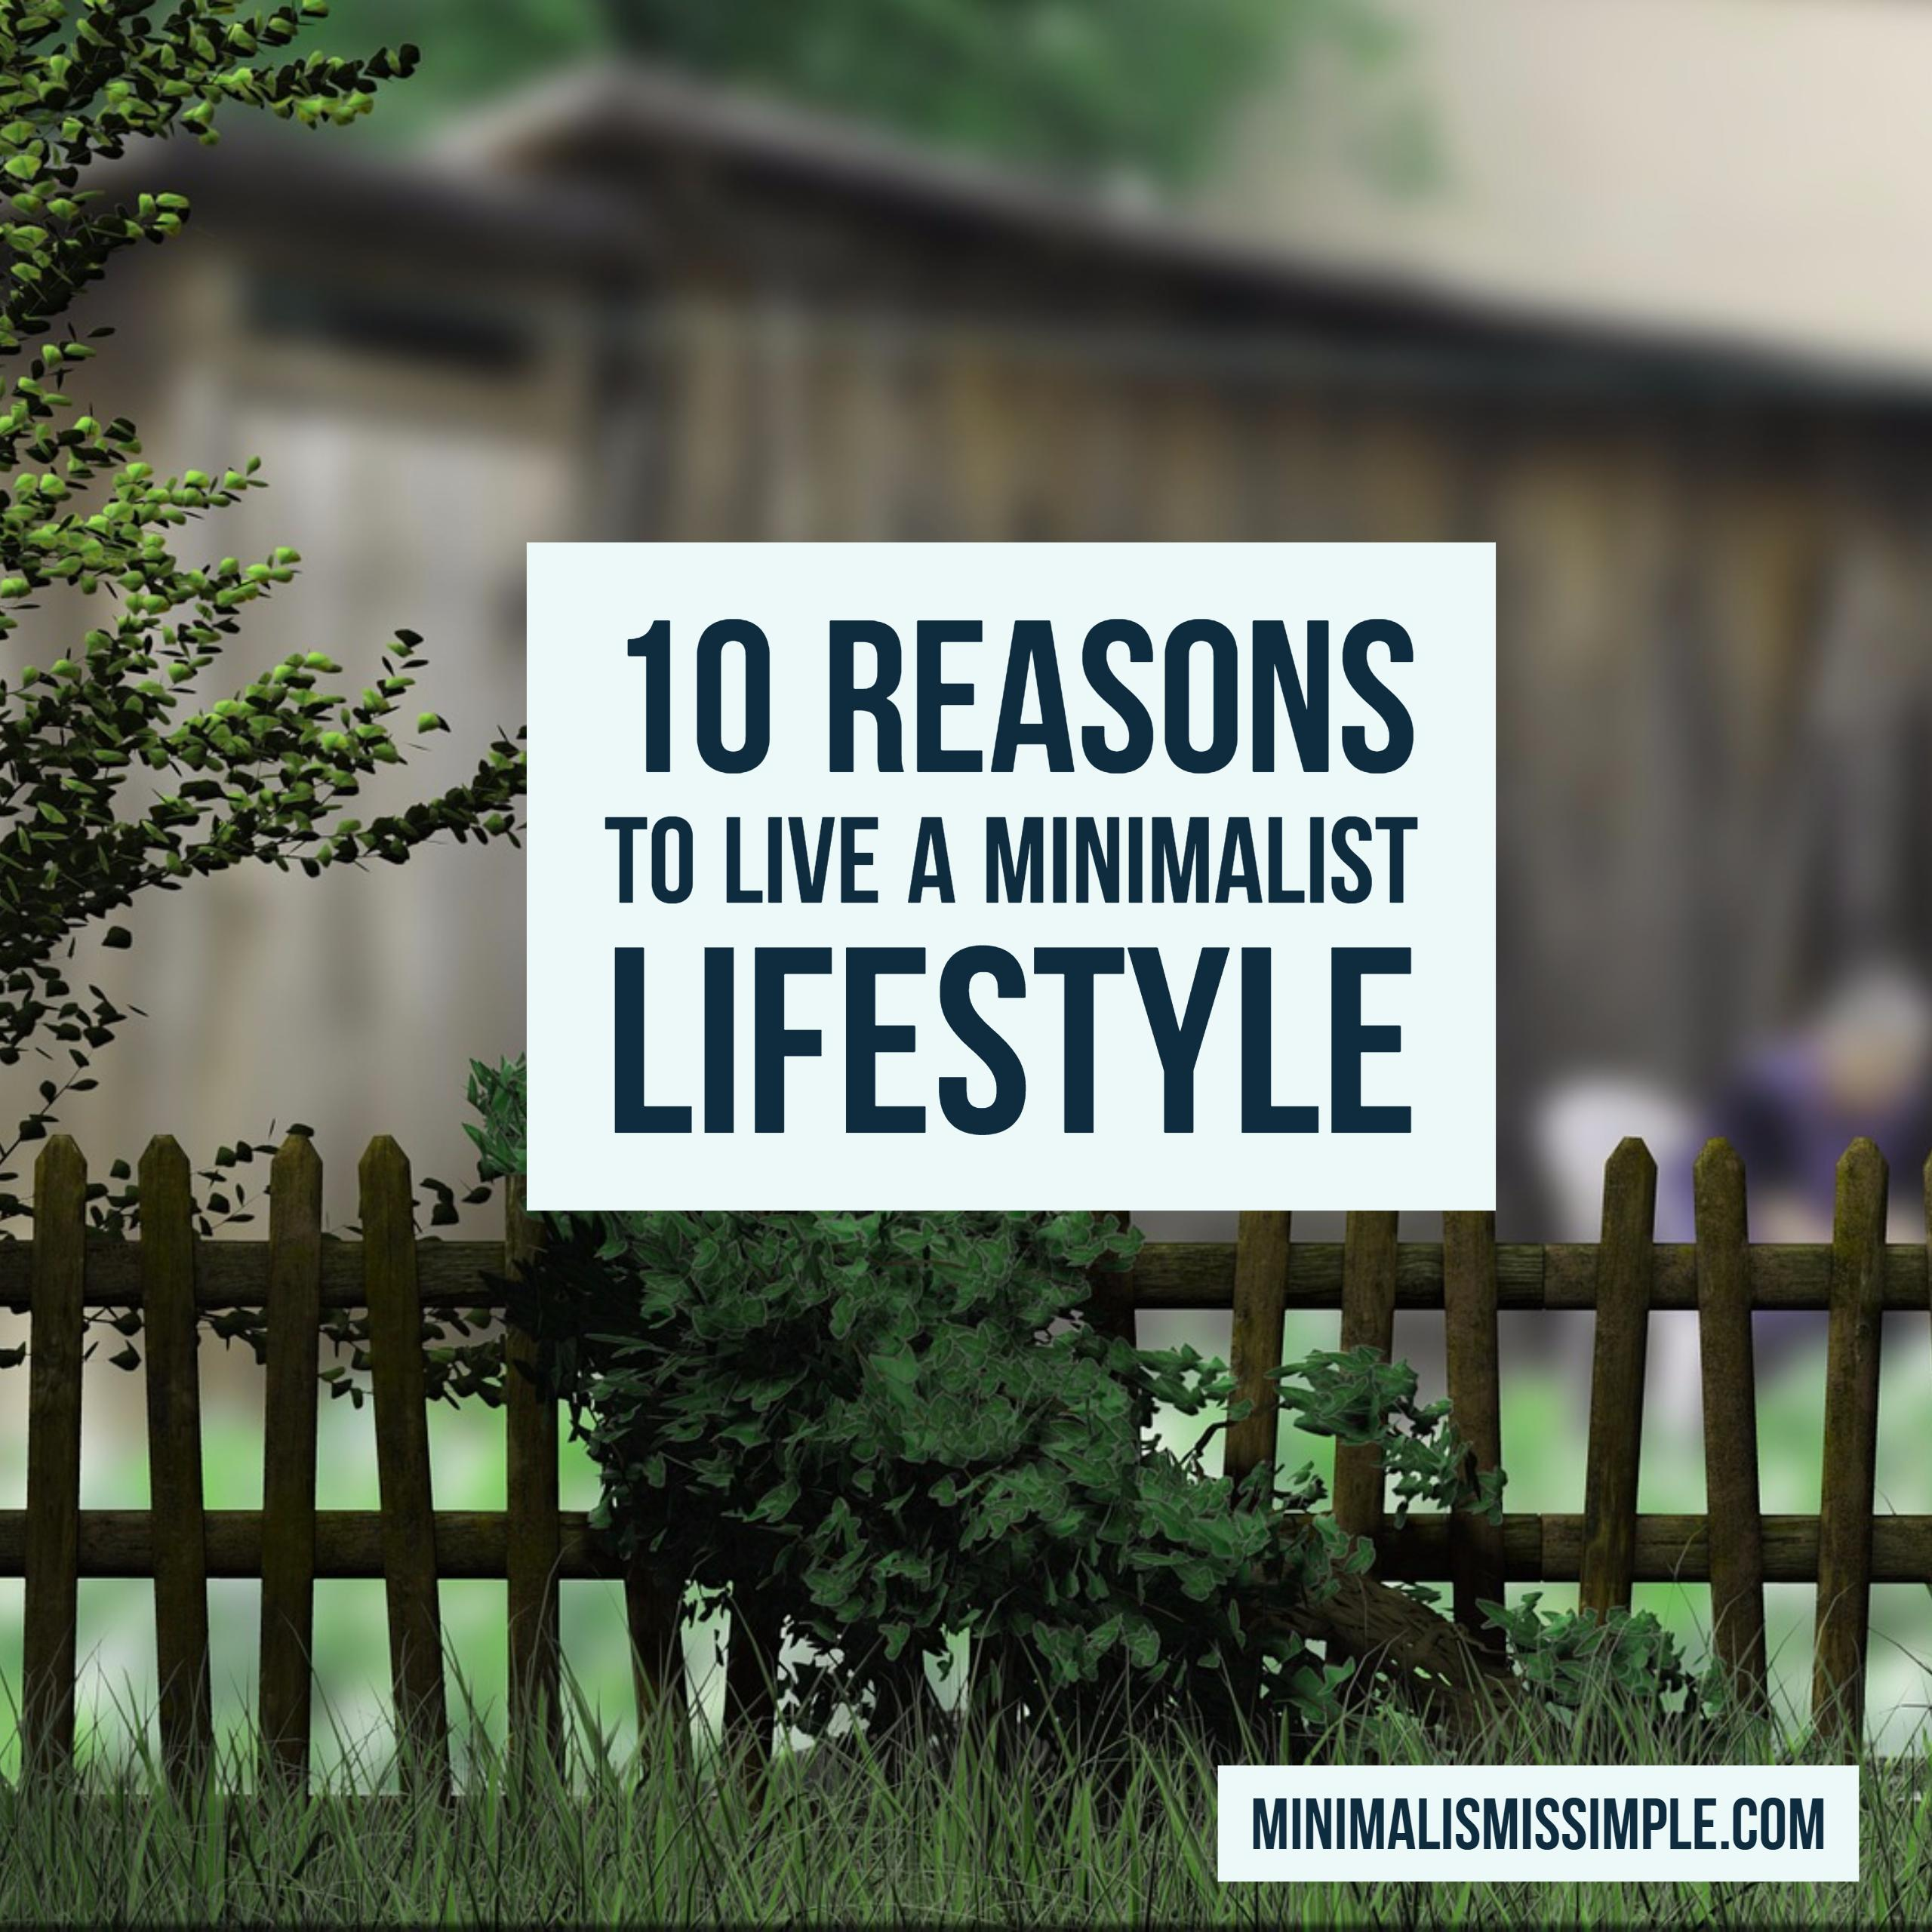 10 reasons to live minimalist lifestyle MinimalismIsSimple.com